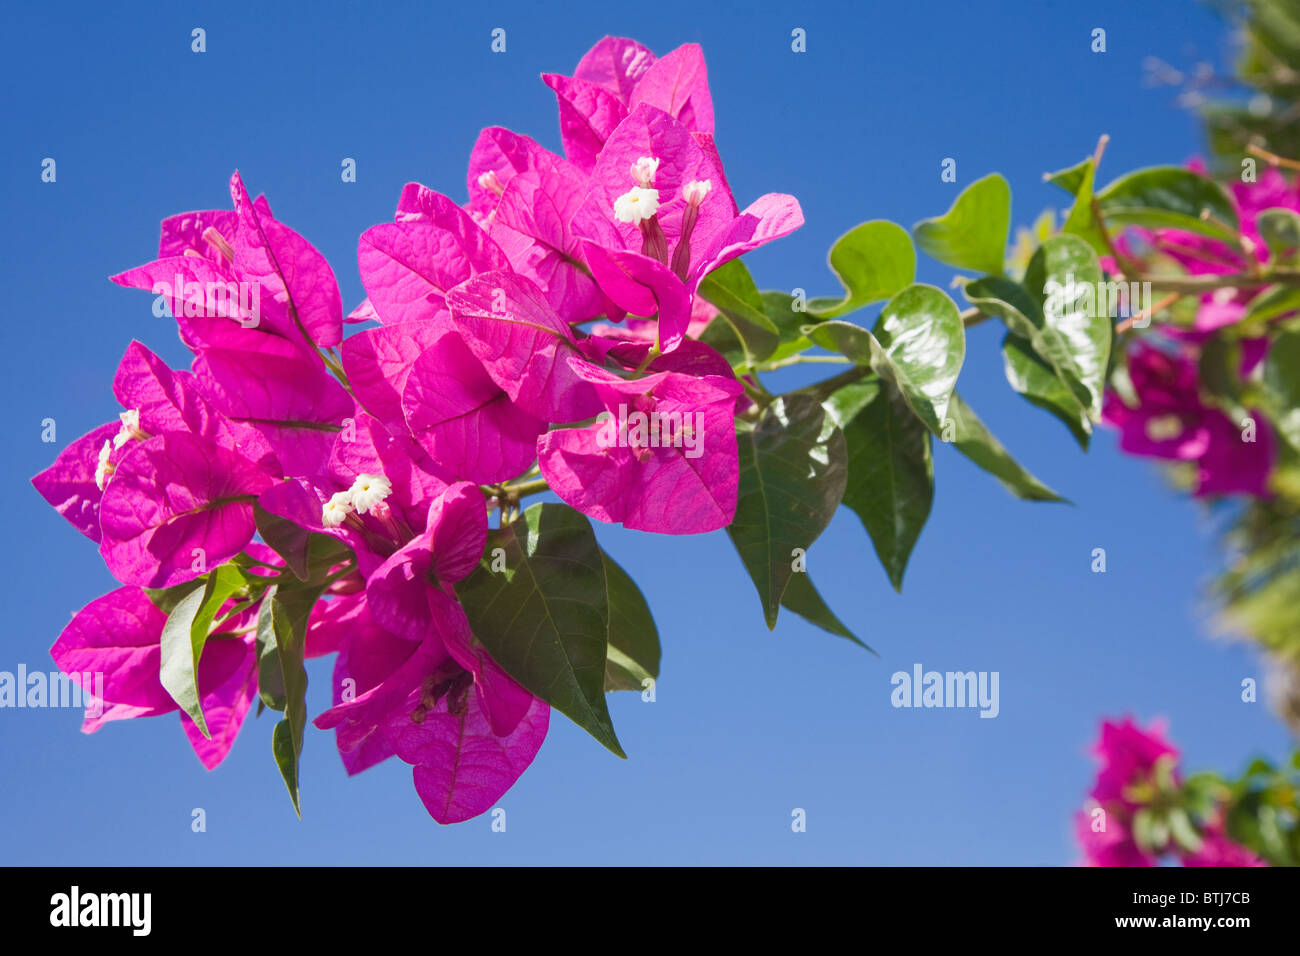 Bougainvillea flowers against a blue sky - Stock Image